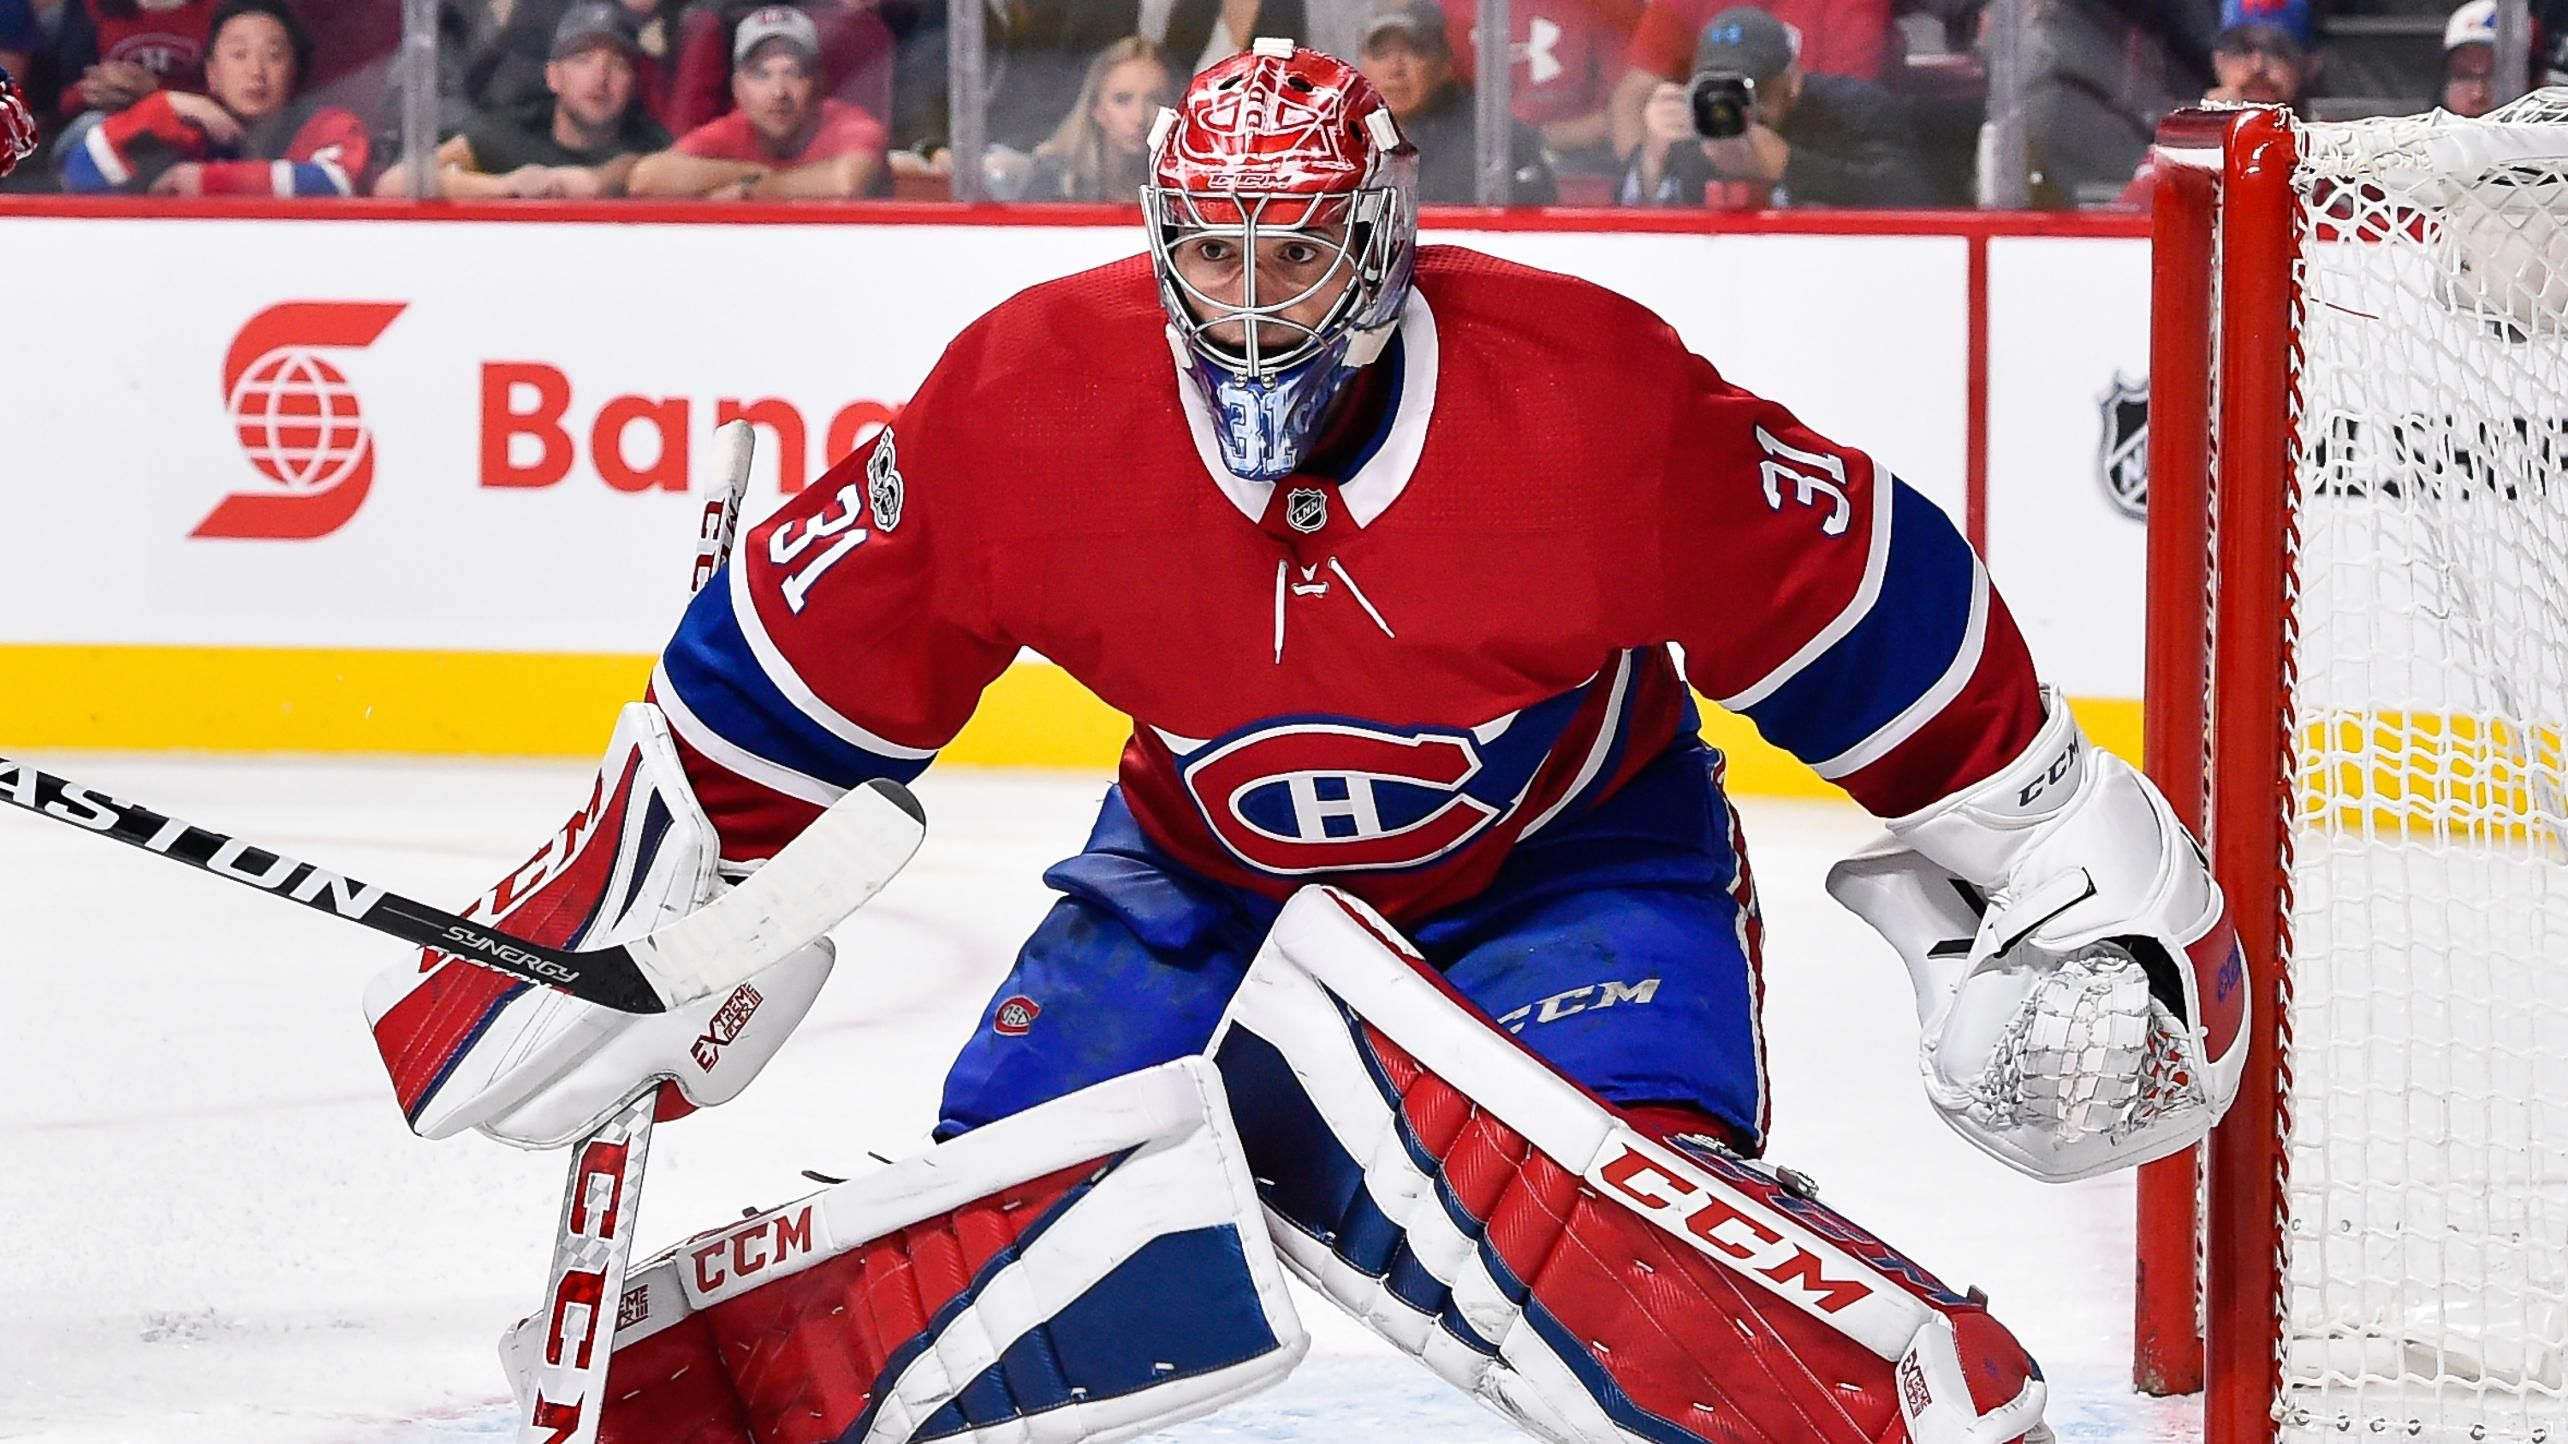 Price will start for Canadiens against Sabres